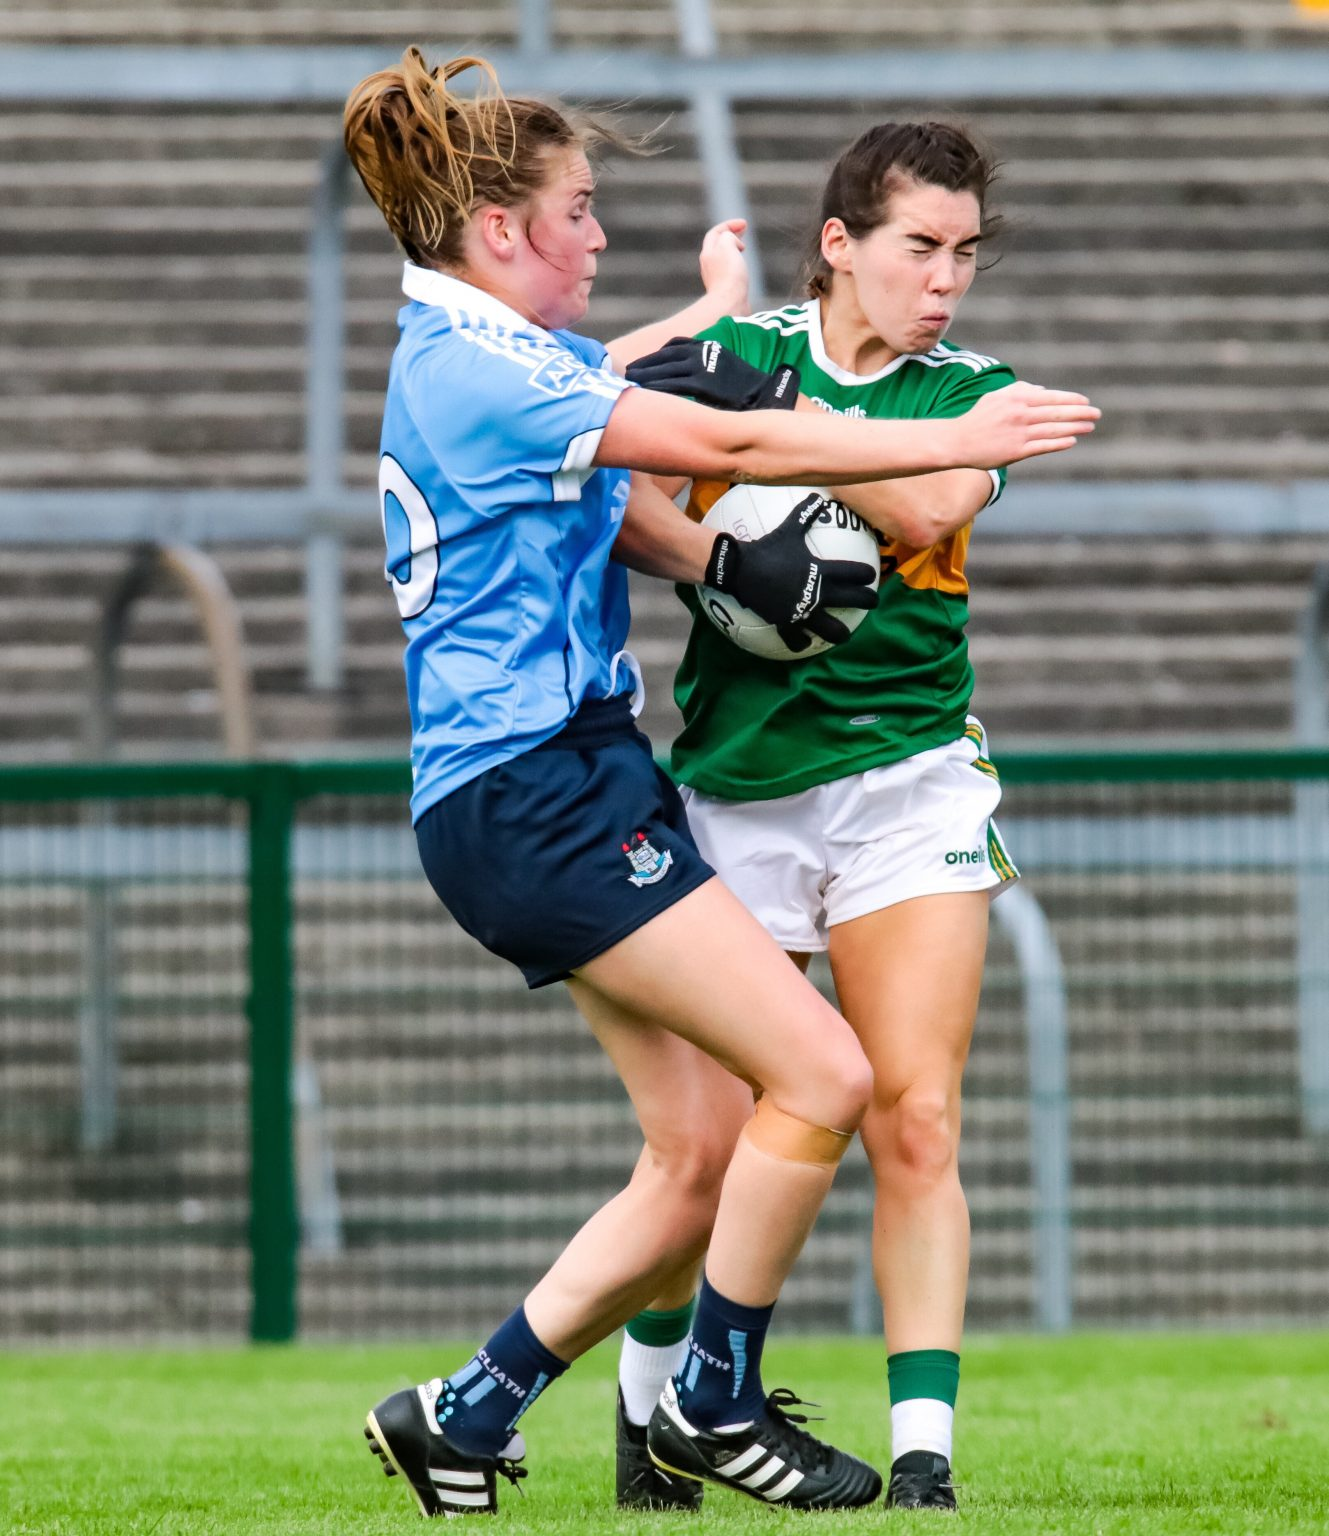 Dublin player in a sky blue jersey and navy shorts tackles a Kerry player in a green and gold jersey and white shorts, photo used to promote the Dublin LGFA notes which include Goal Keeping Workshop Info